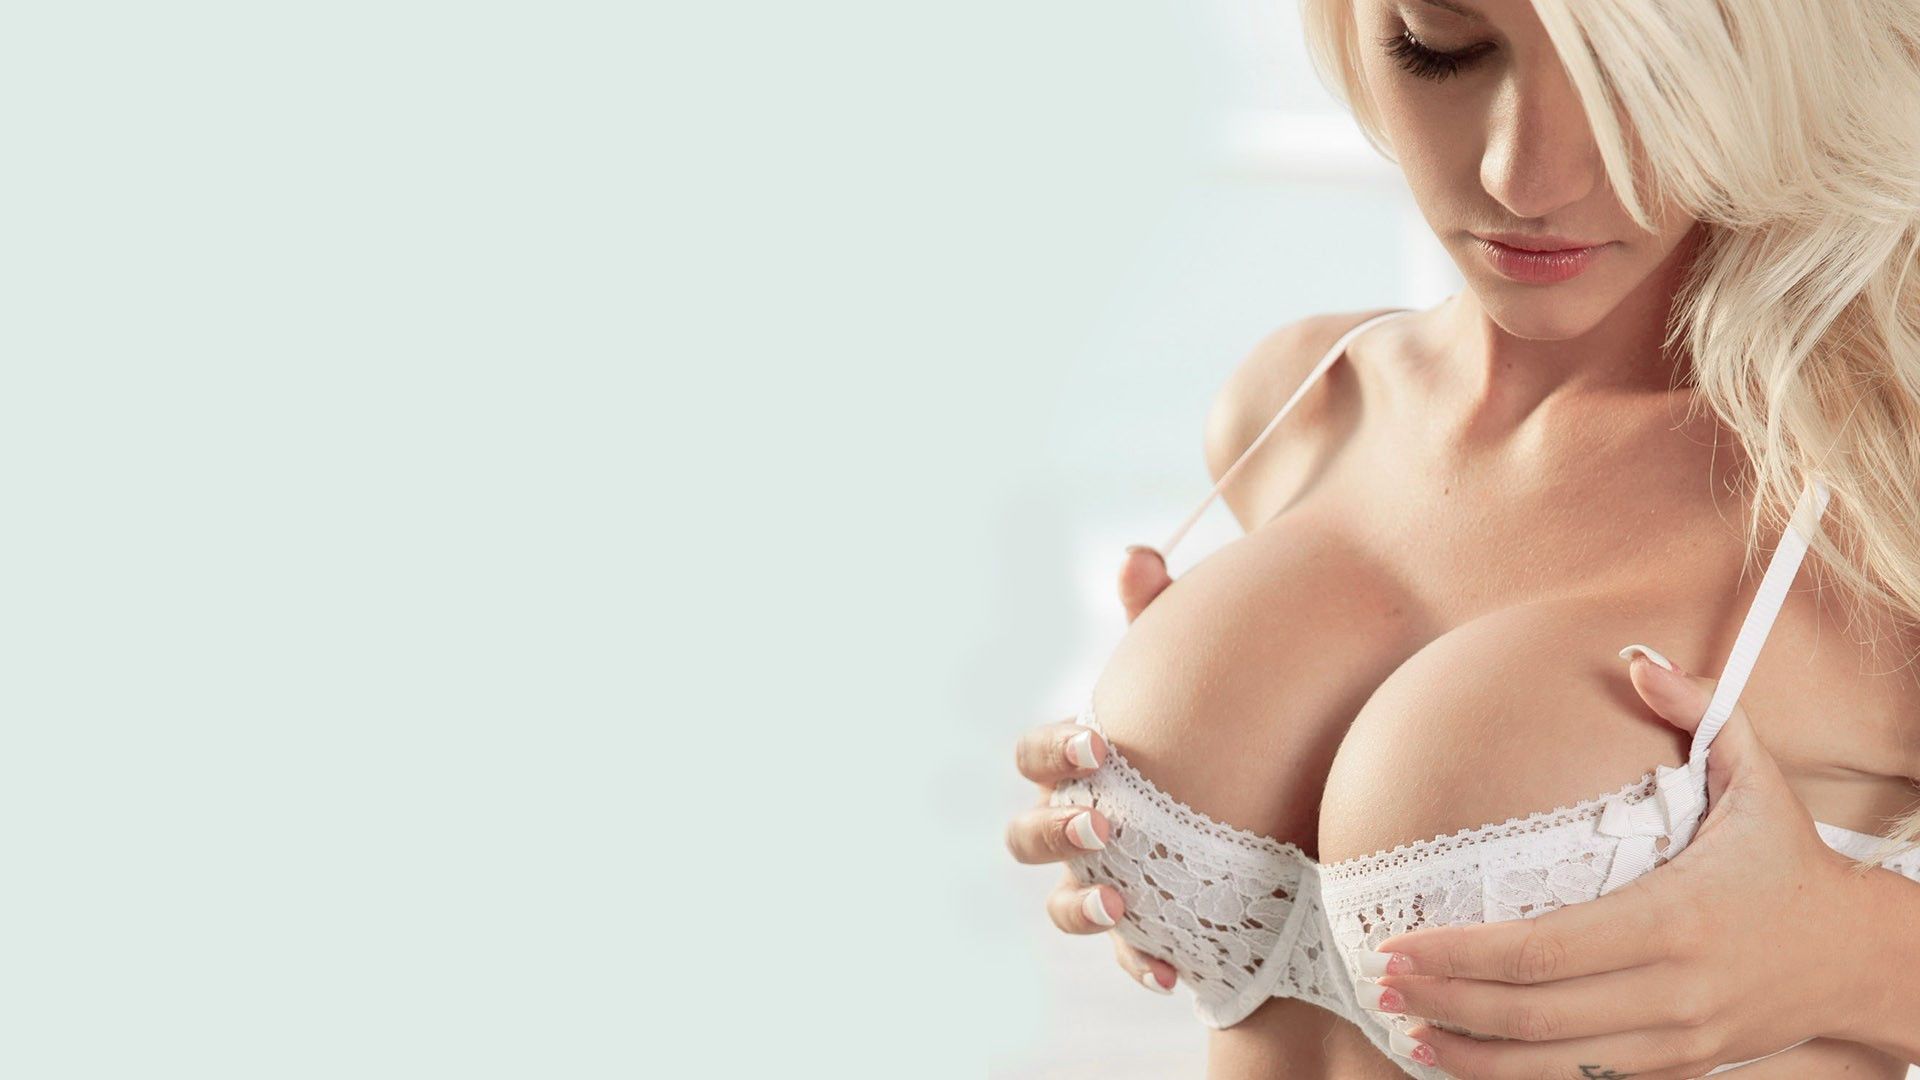 hd boobs